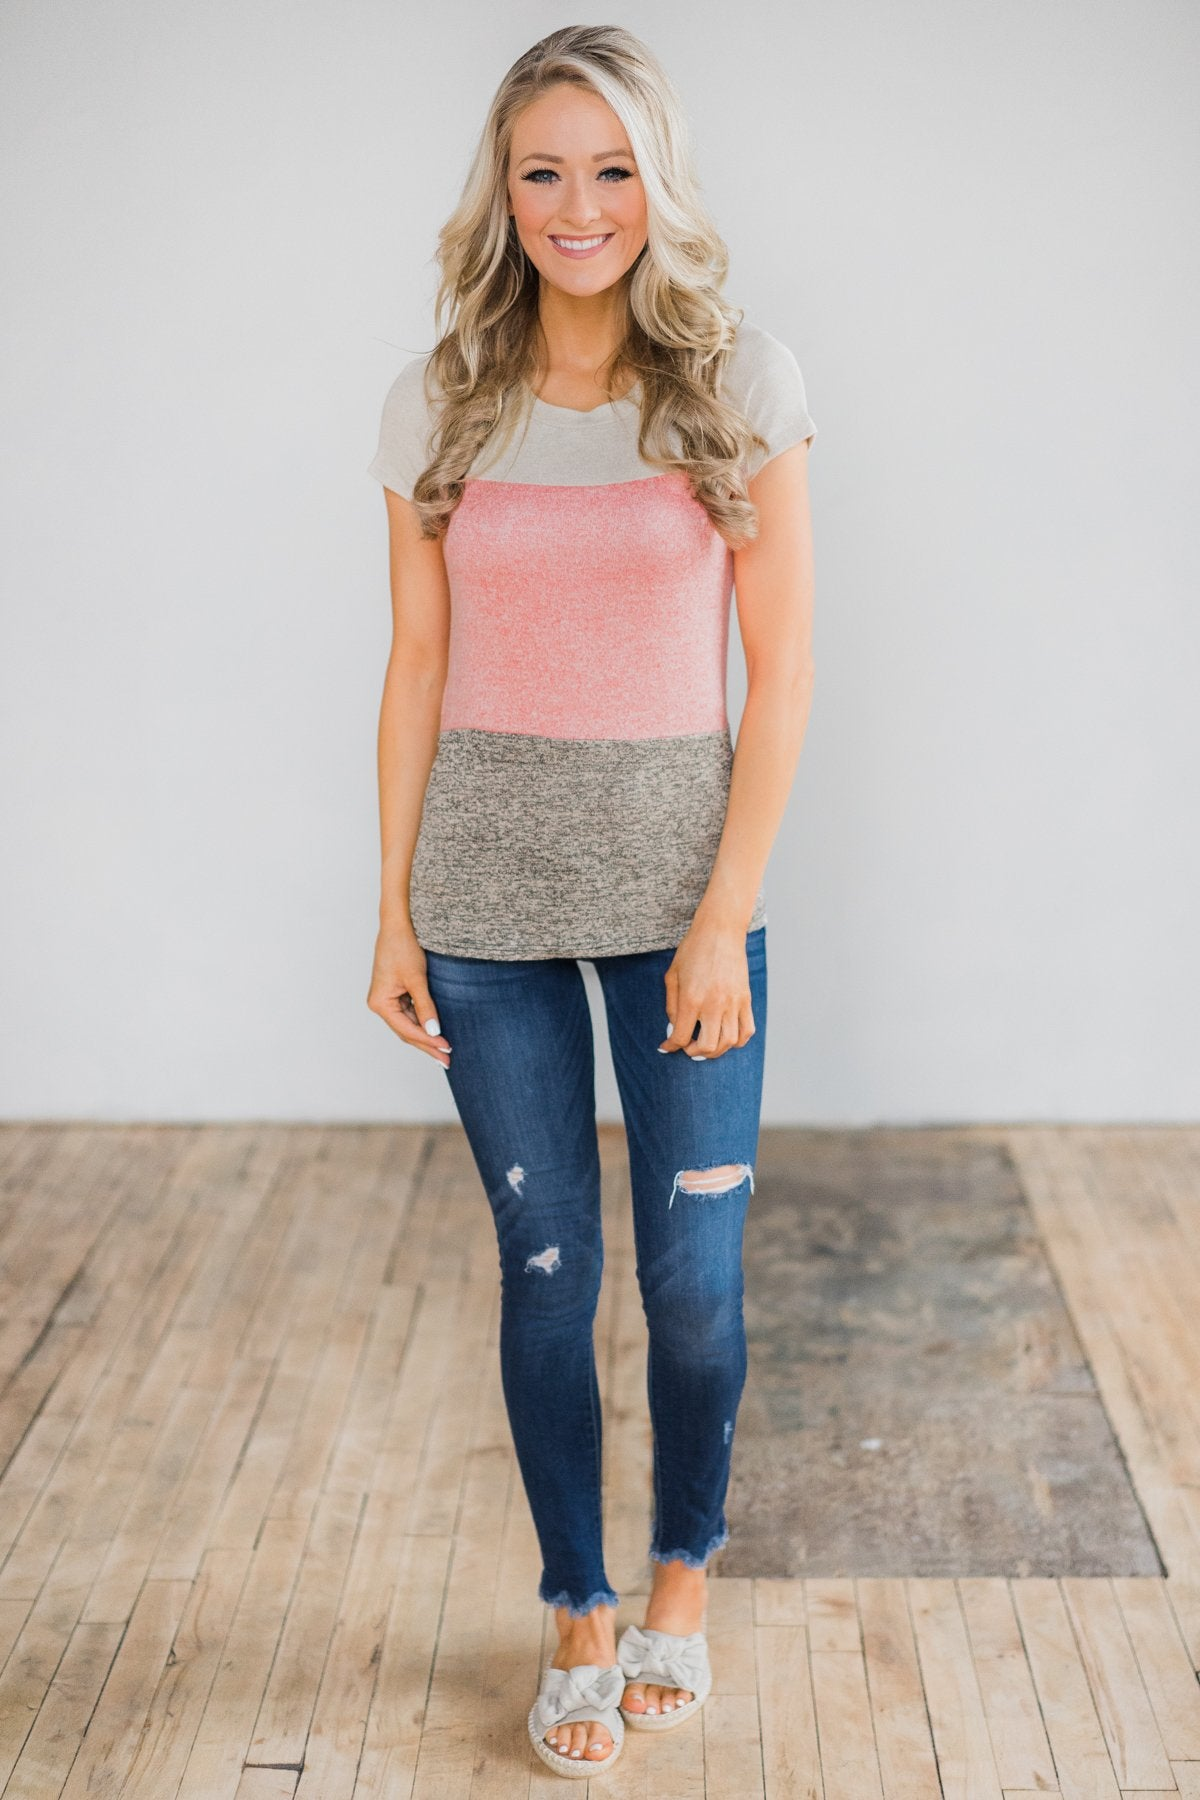 Summer Neon Lights Color Block Top - Speckled Mocha & Cream